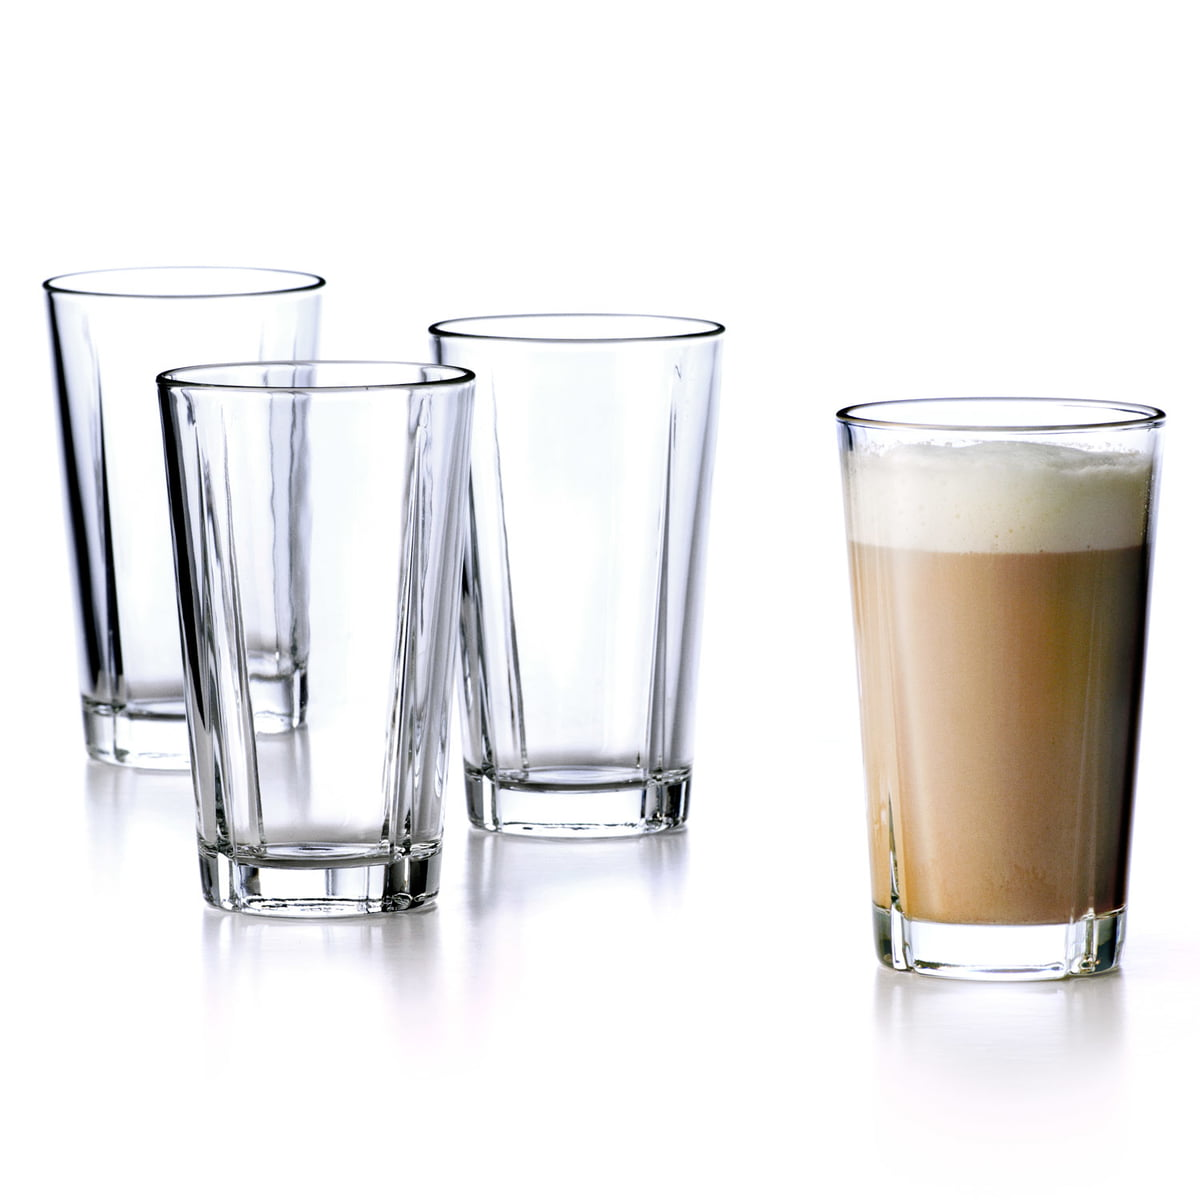 Grand Cru Kaffeeglas (4er-Set), 37 cl